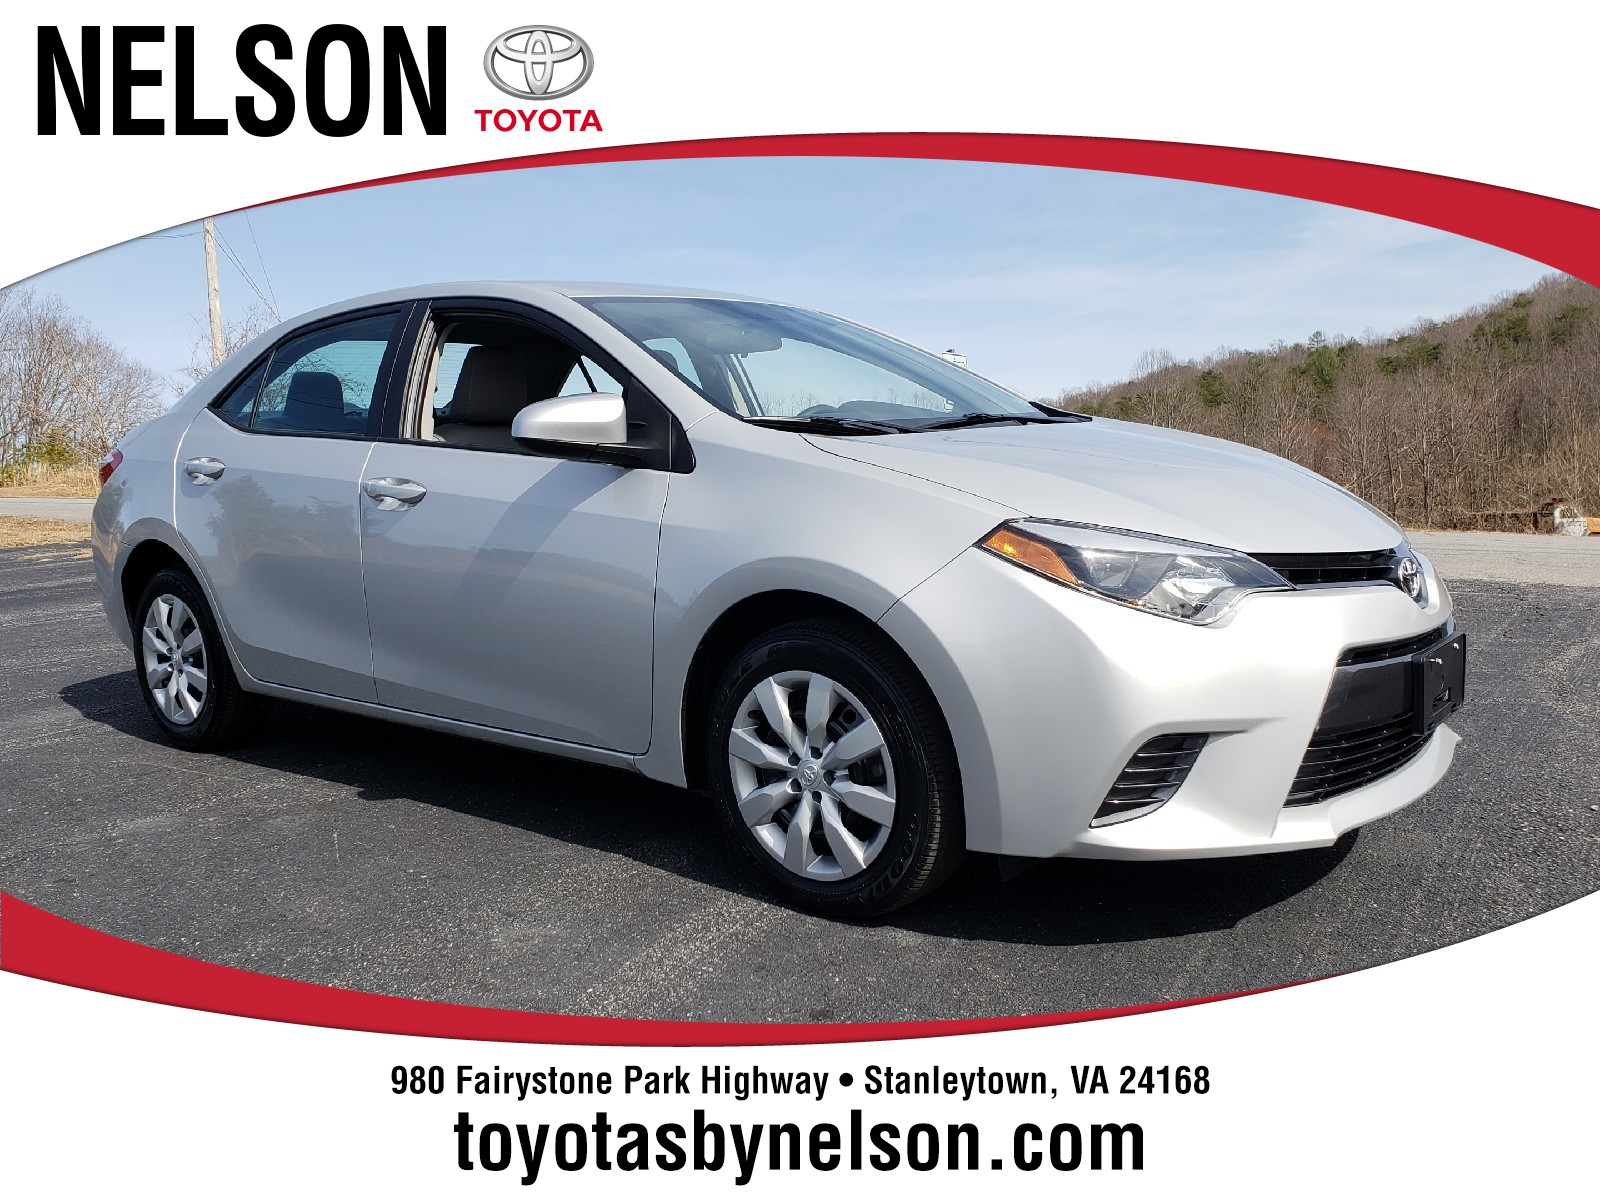 Used toyota Corolla for Sale Fresh Used 2016 toyota Corolla for Sale at Nelson Mazda